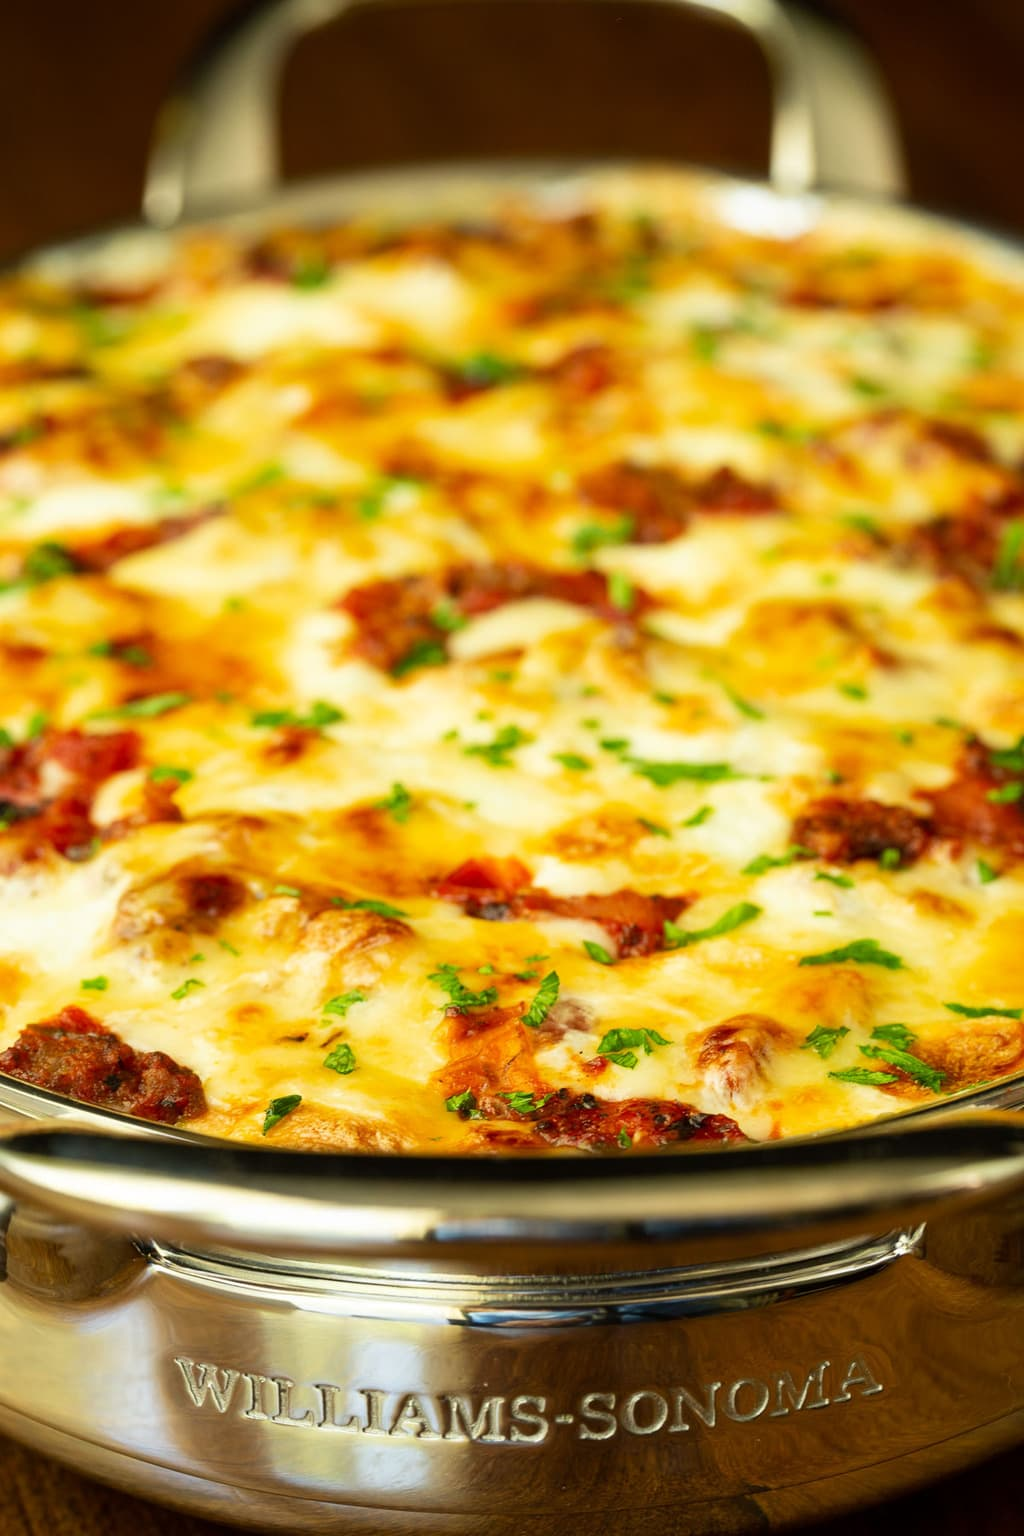 Vertical closeup photo of a stainless steel baking pan of Eggplant Italian Sausage Gratin.